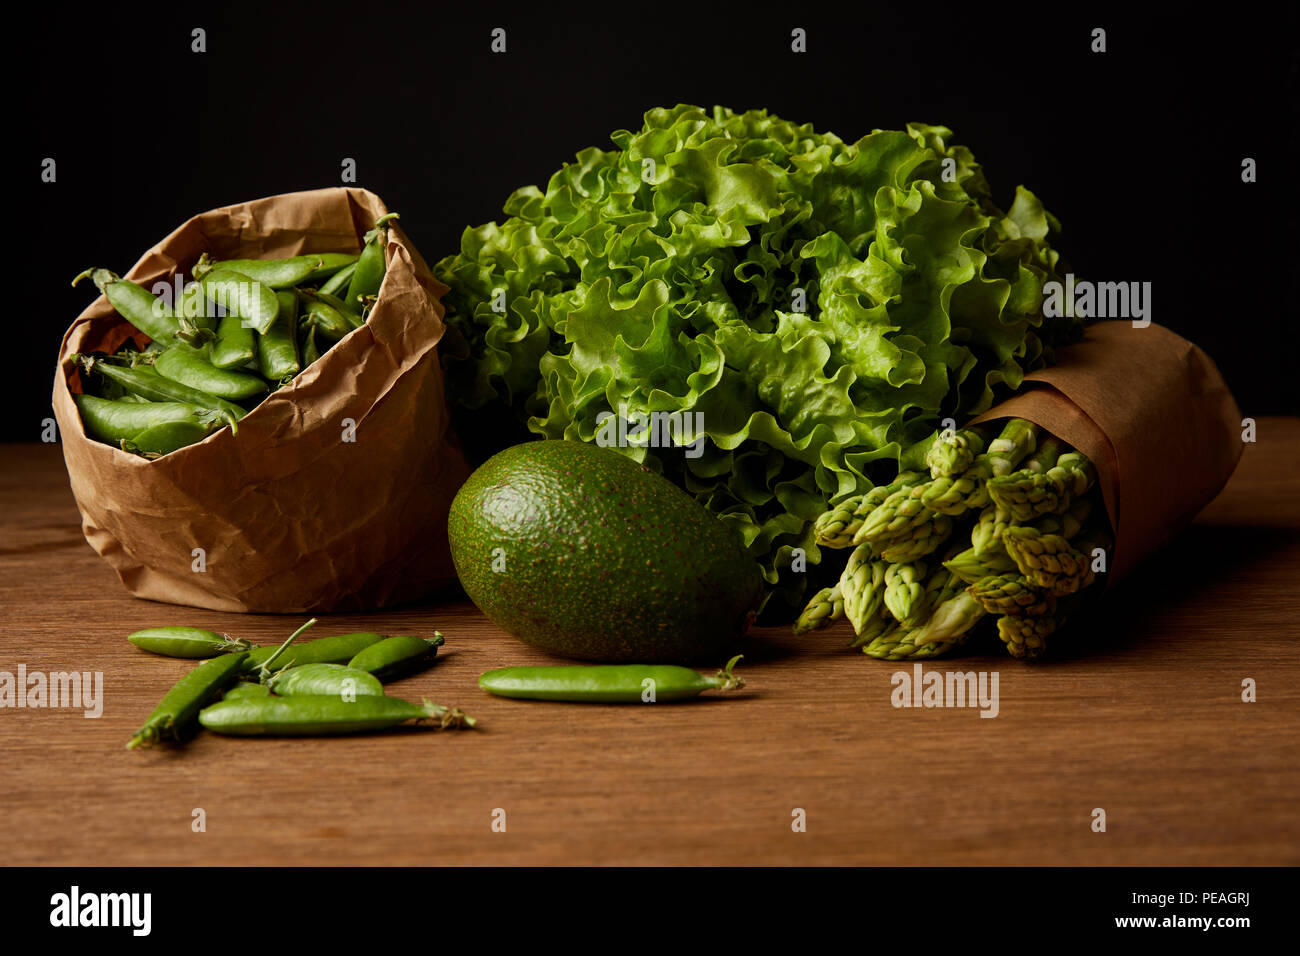 close-up shot of healthy green vegetables on wooden surface - Stock Image